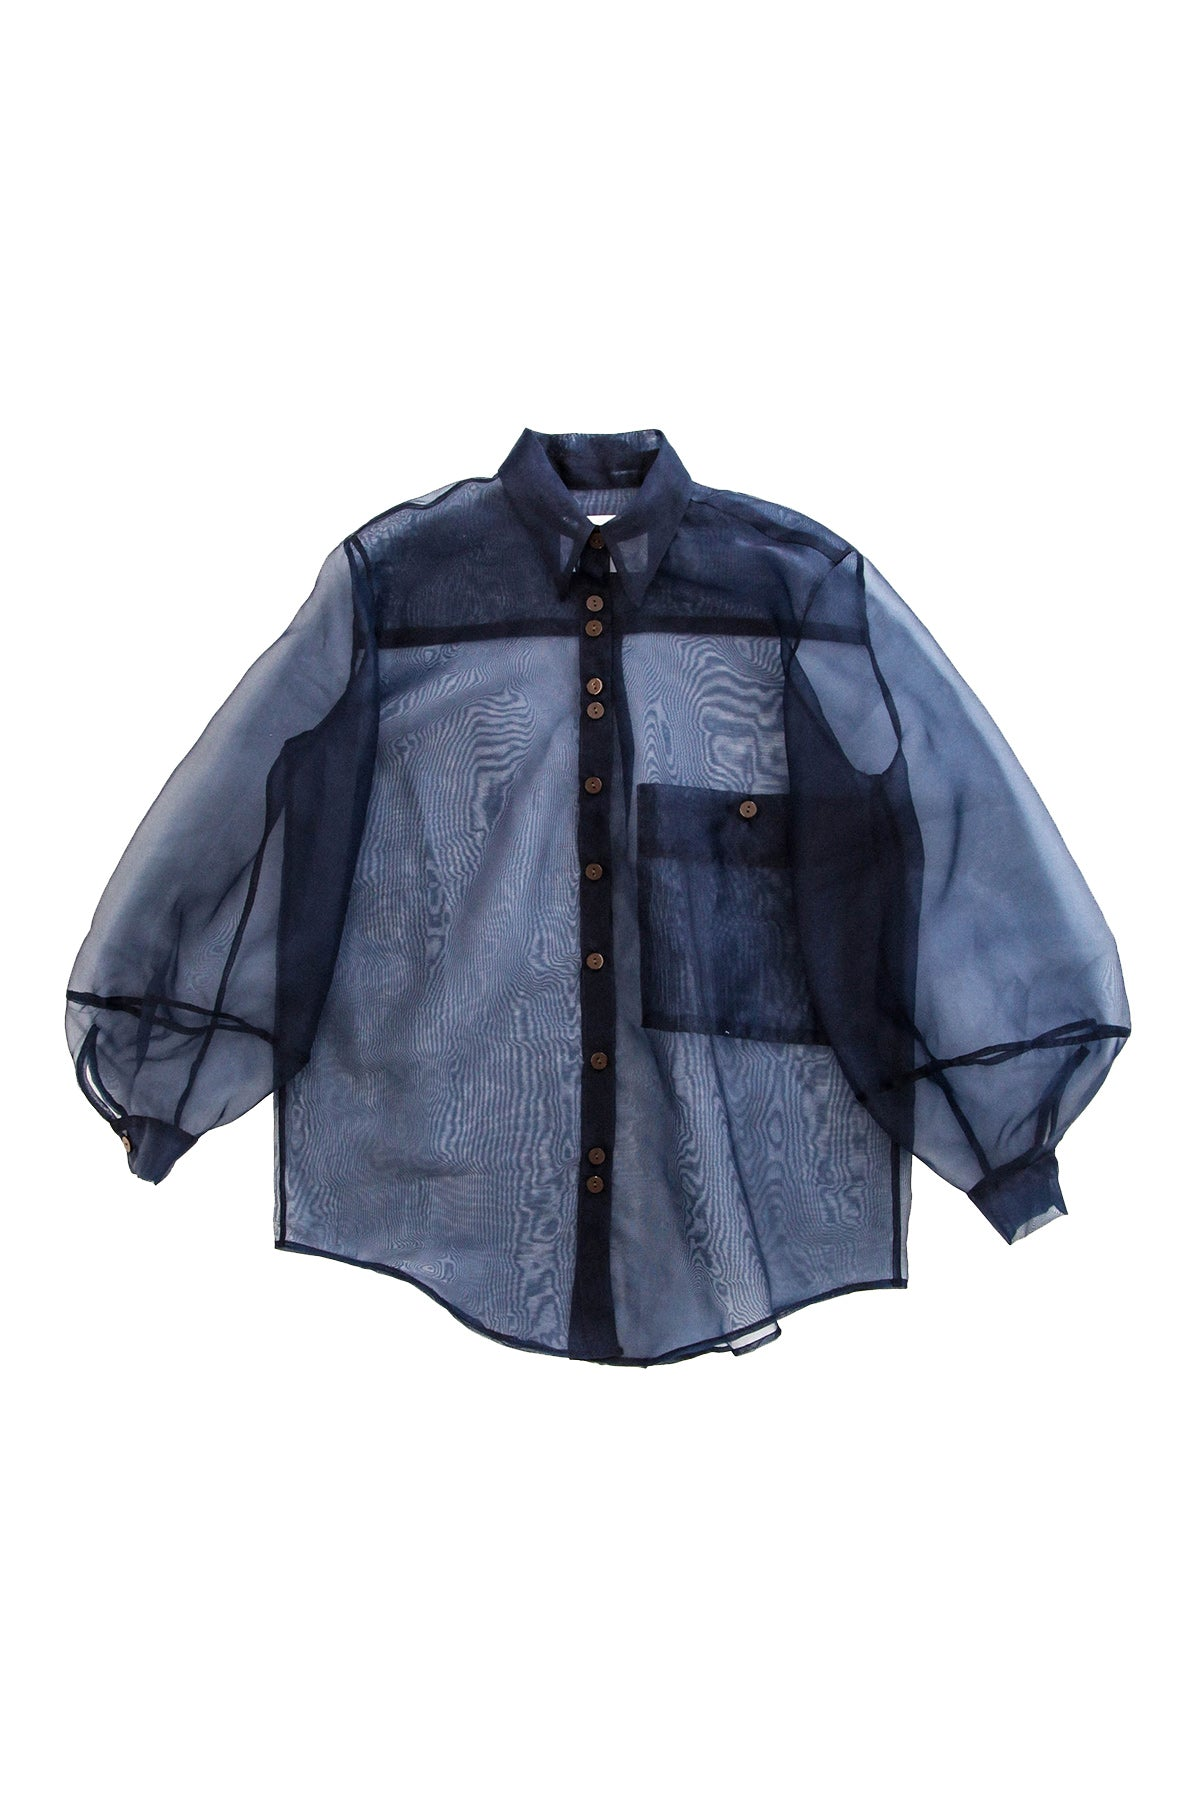 Morel Shirt in Navy